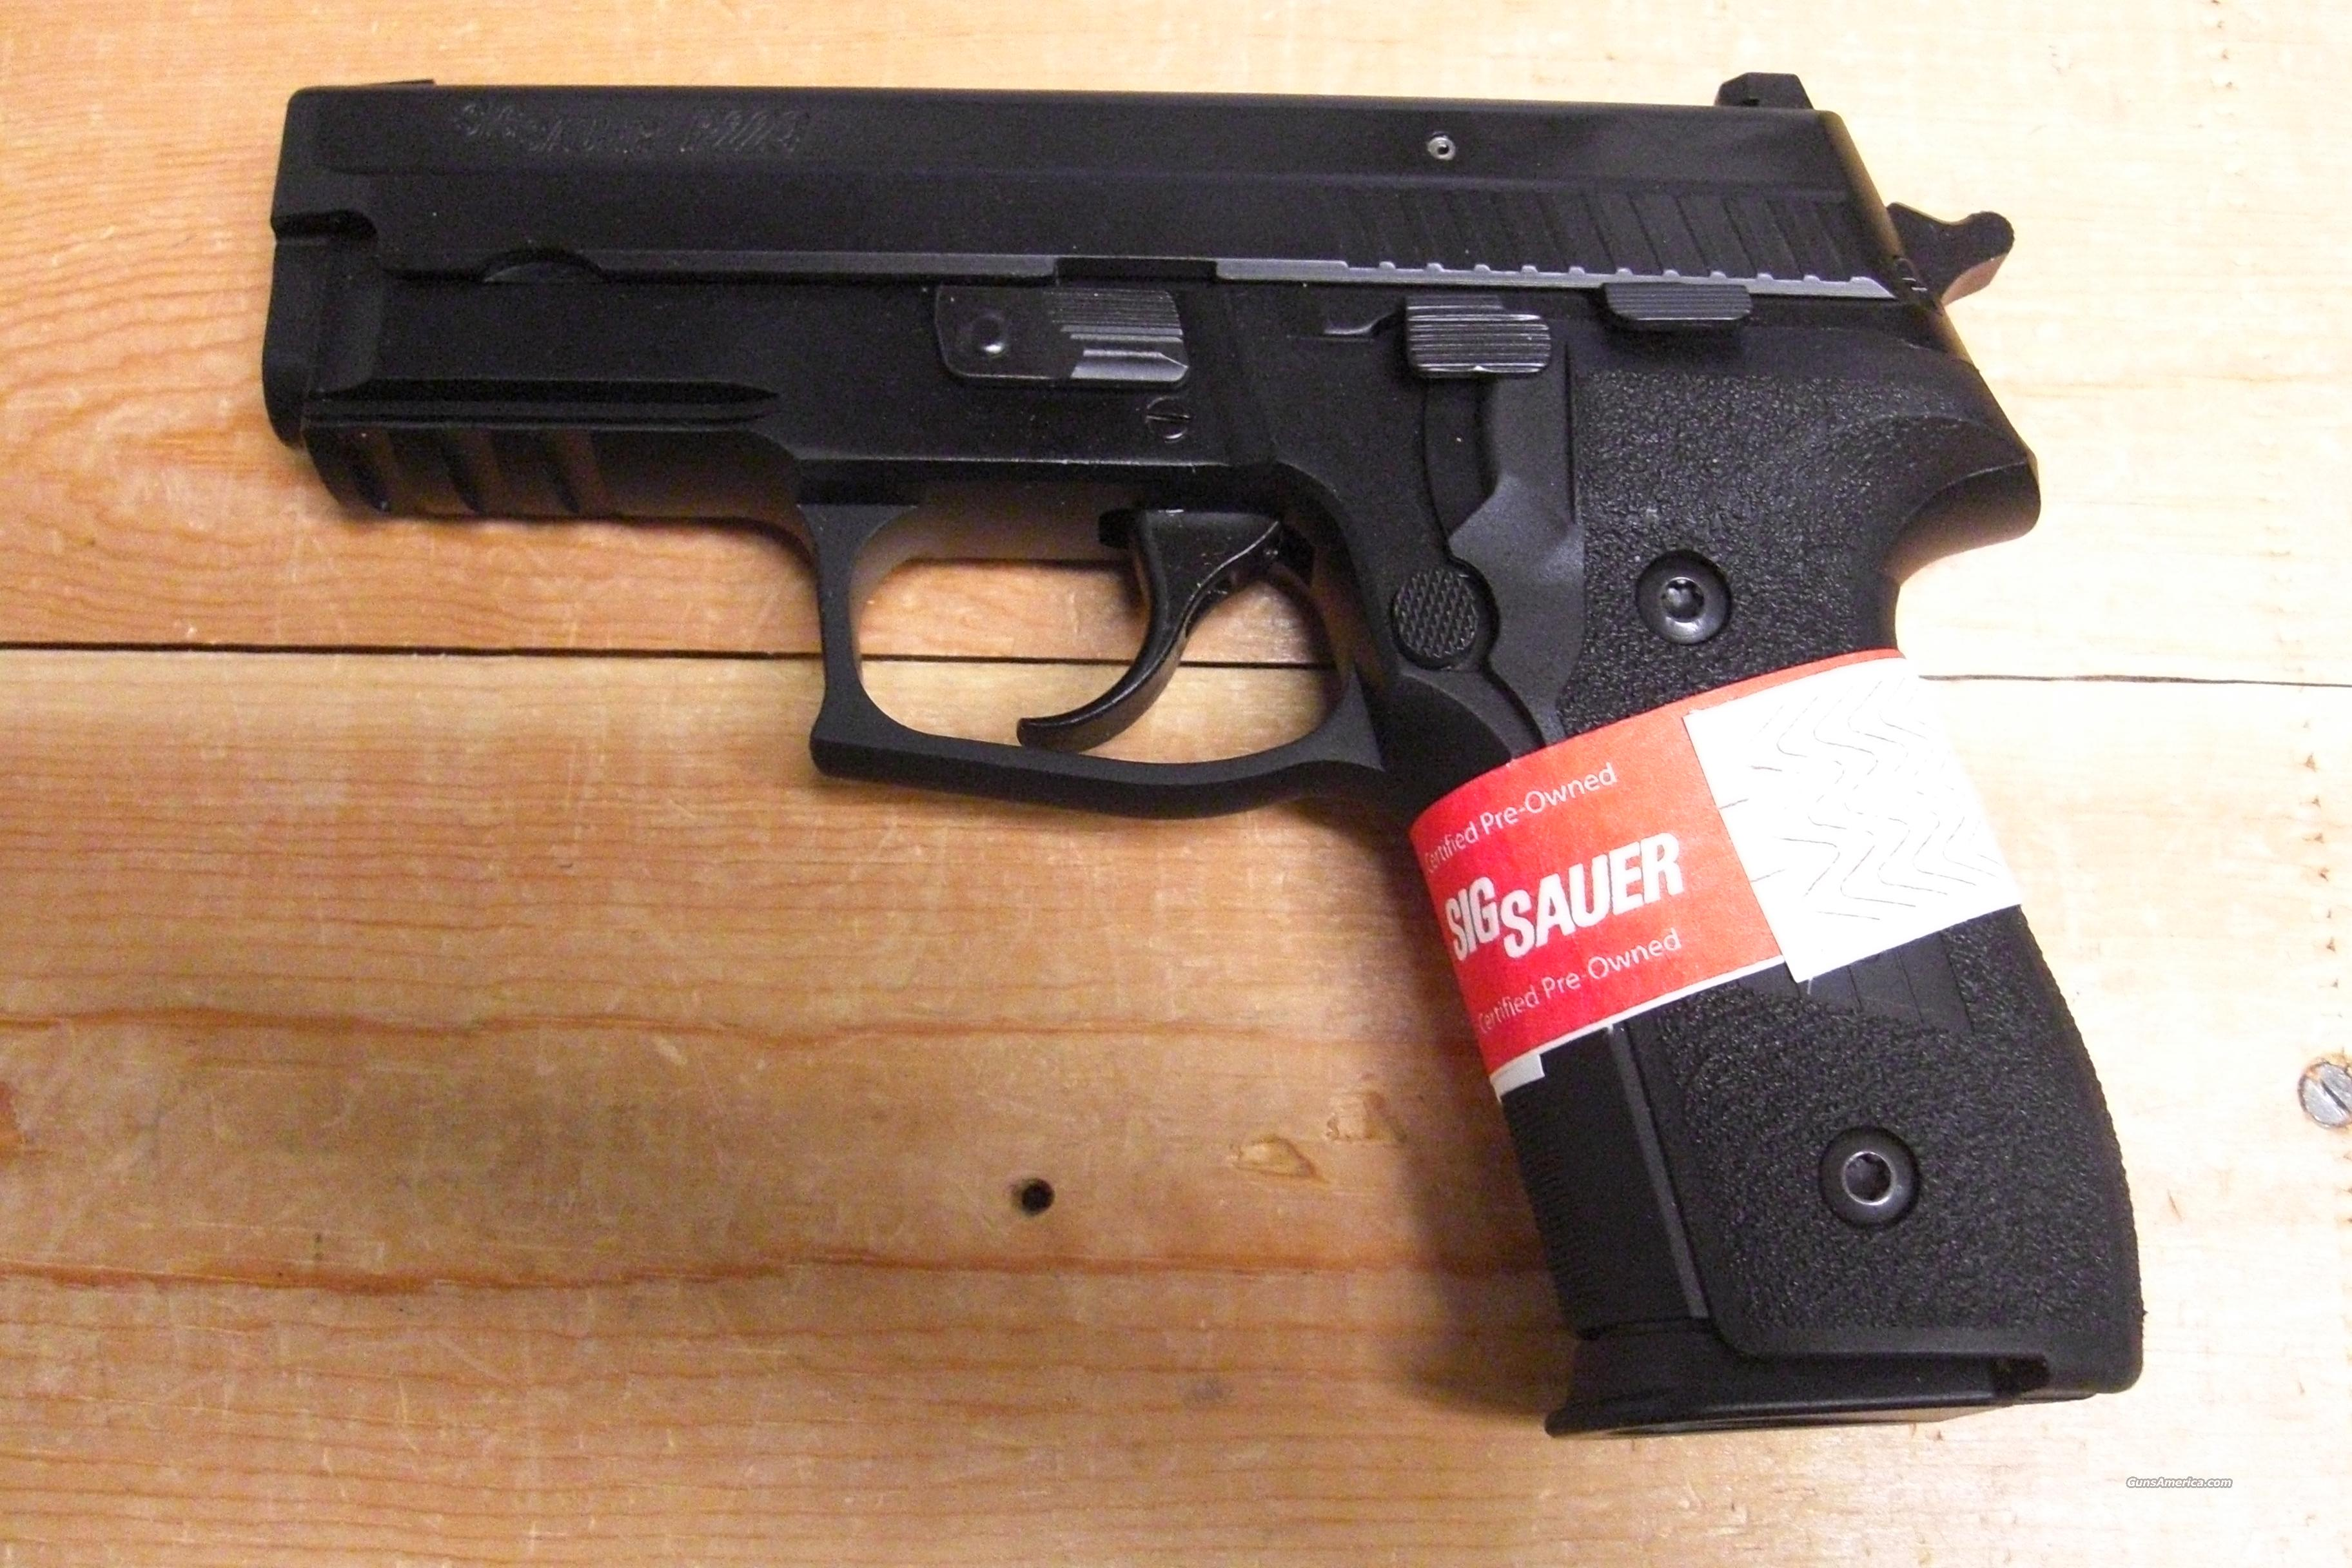 P229  factory refurb.w/night sights  Guns > Pistols > Sig - Sauer/Sigarms Pistols > P229